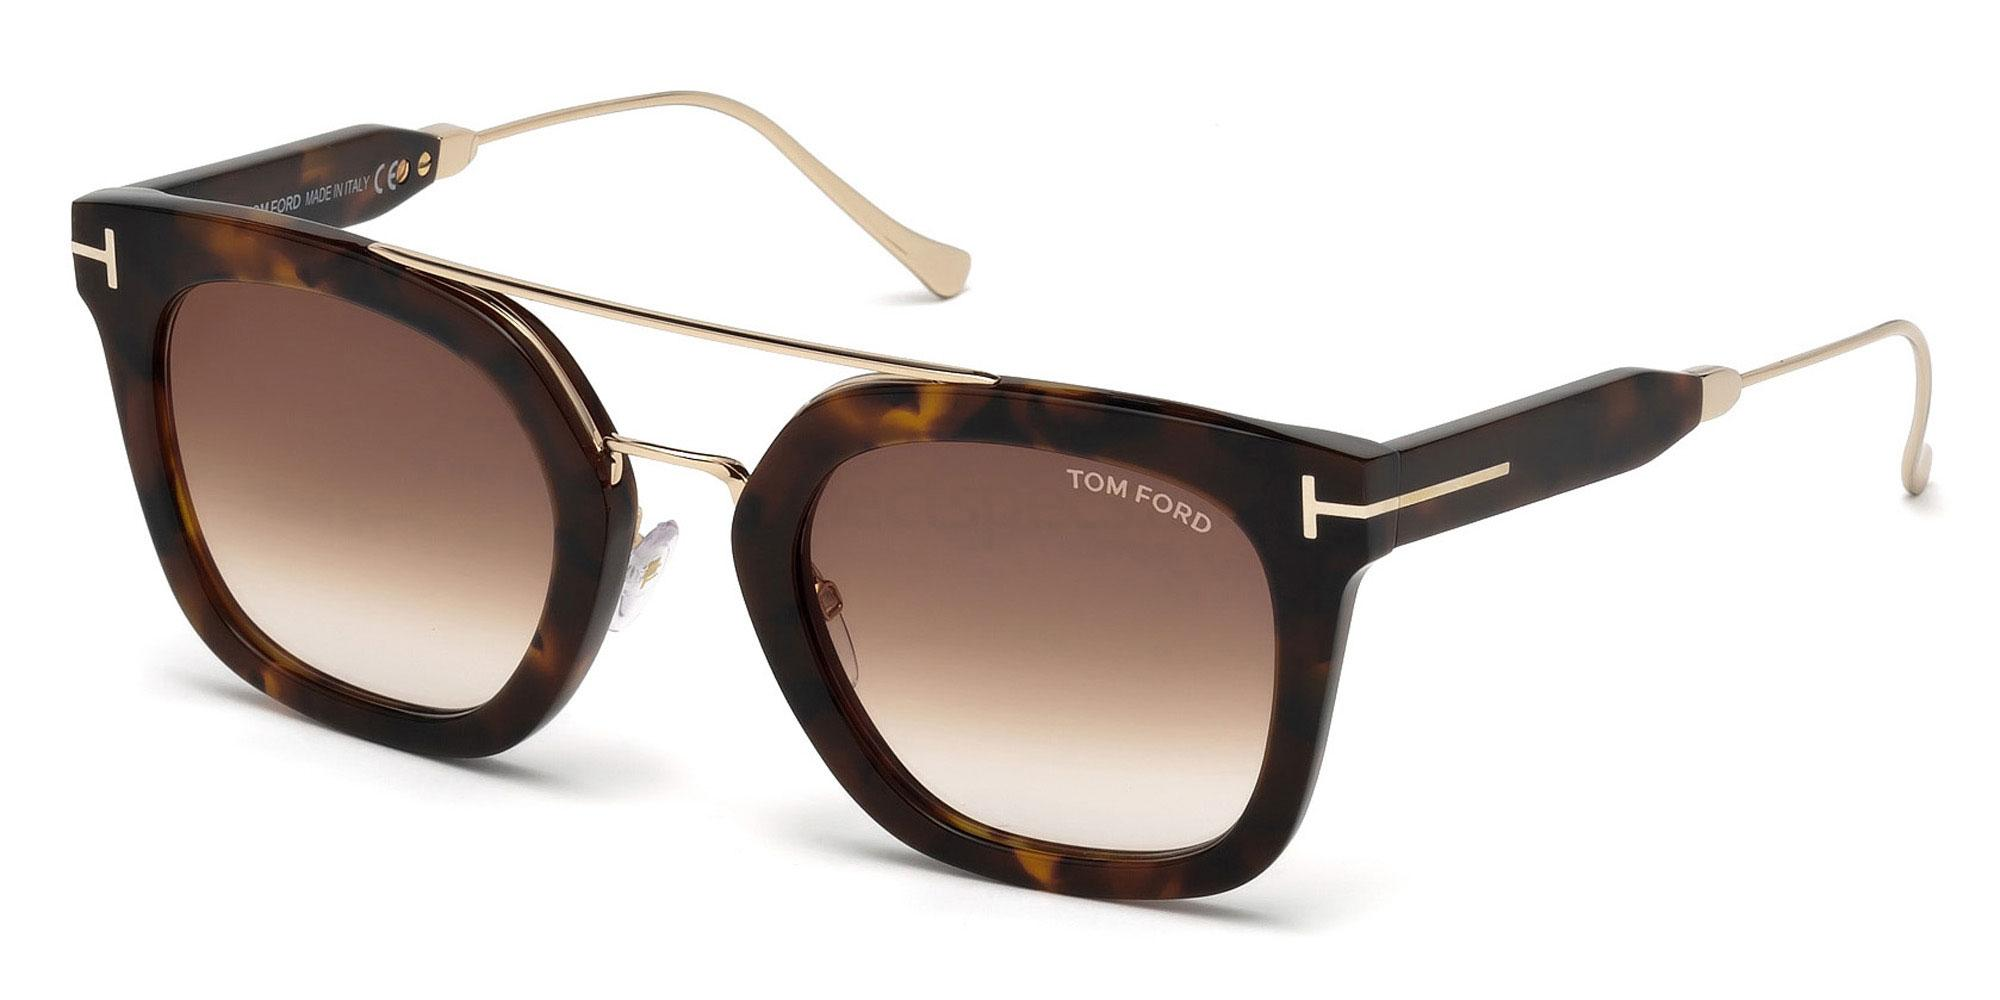 55U FT0541 , Tom Ford